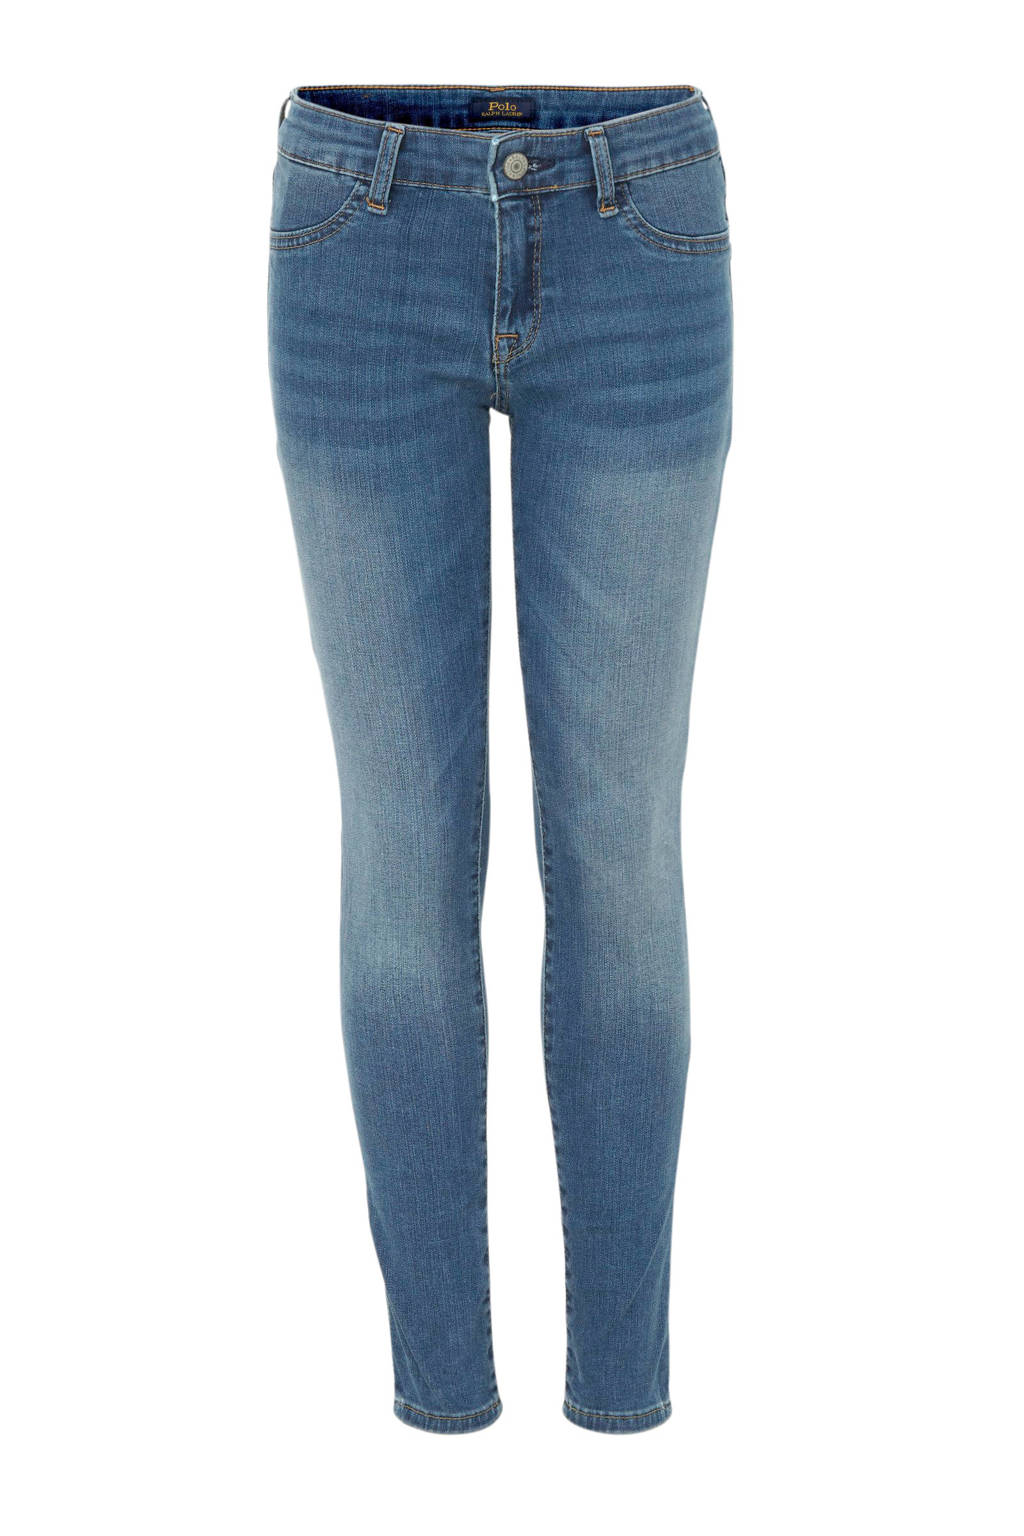 POLO Ralph Lauren skinny jeans Aubrie stonewashed, Stonewashed